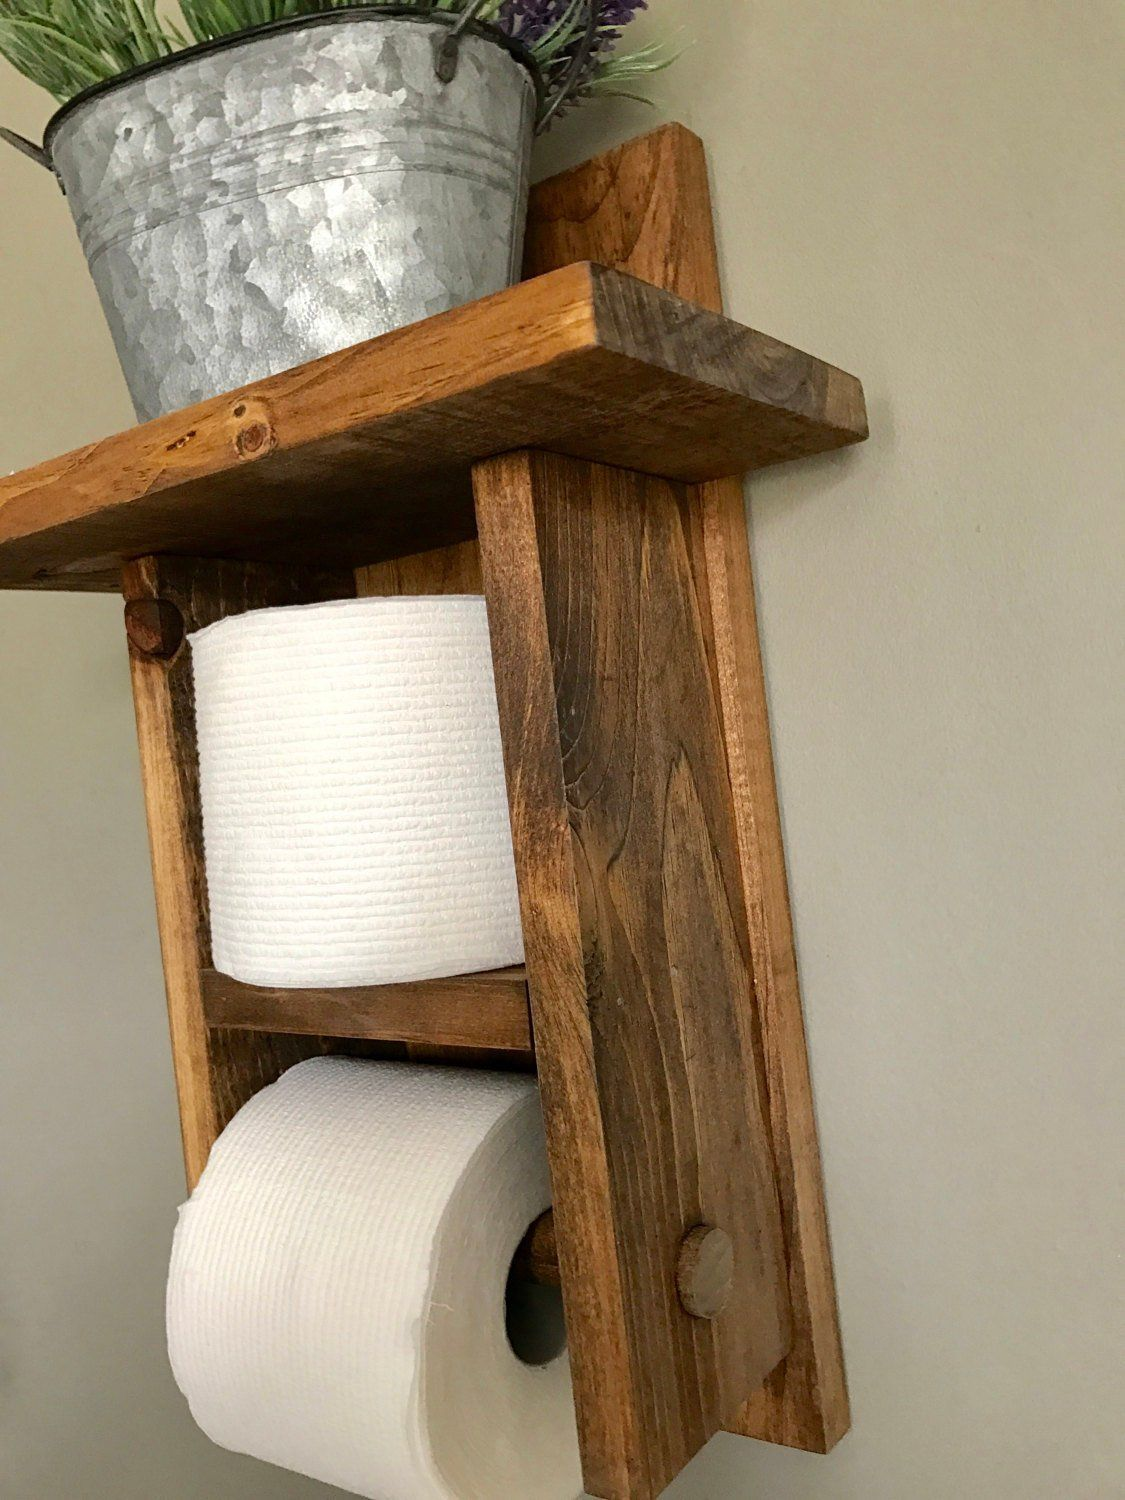 Wood Toilet Roll Holder Toilet Paper Holder Wood Tp Holder Is Great Bathroom